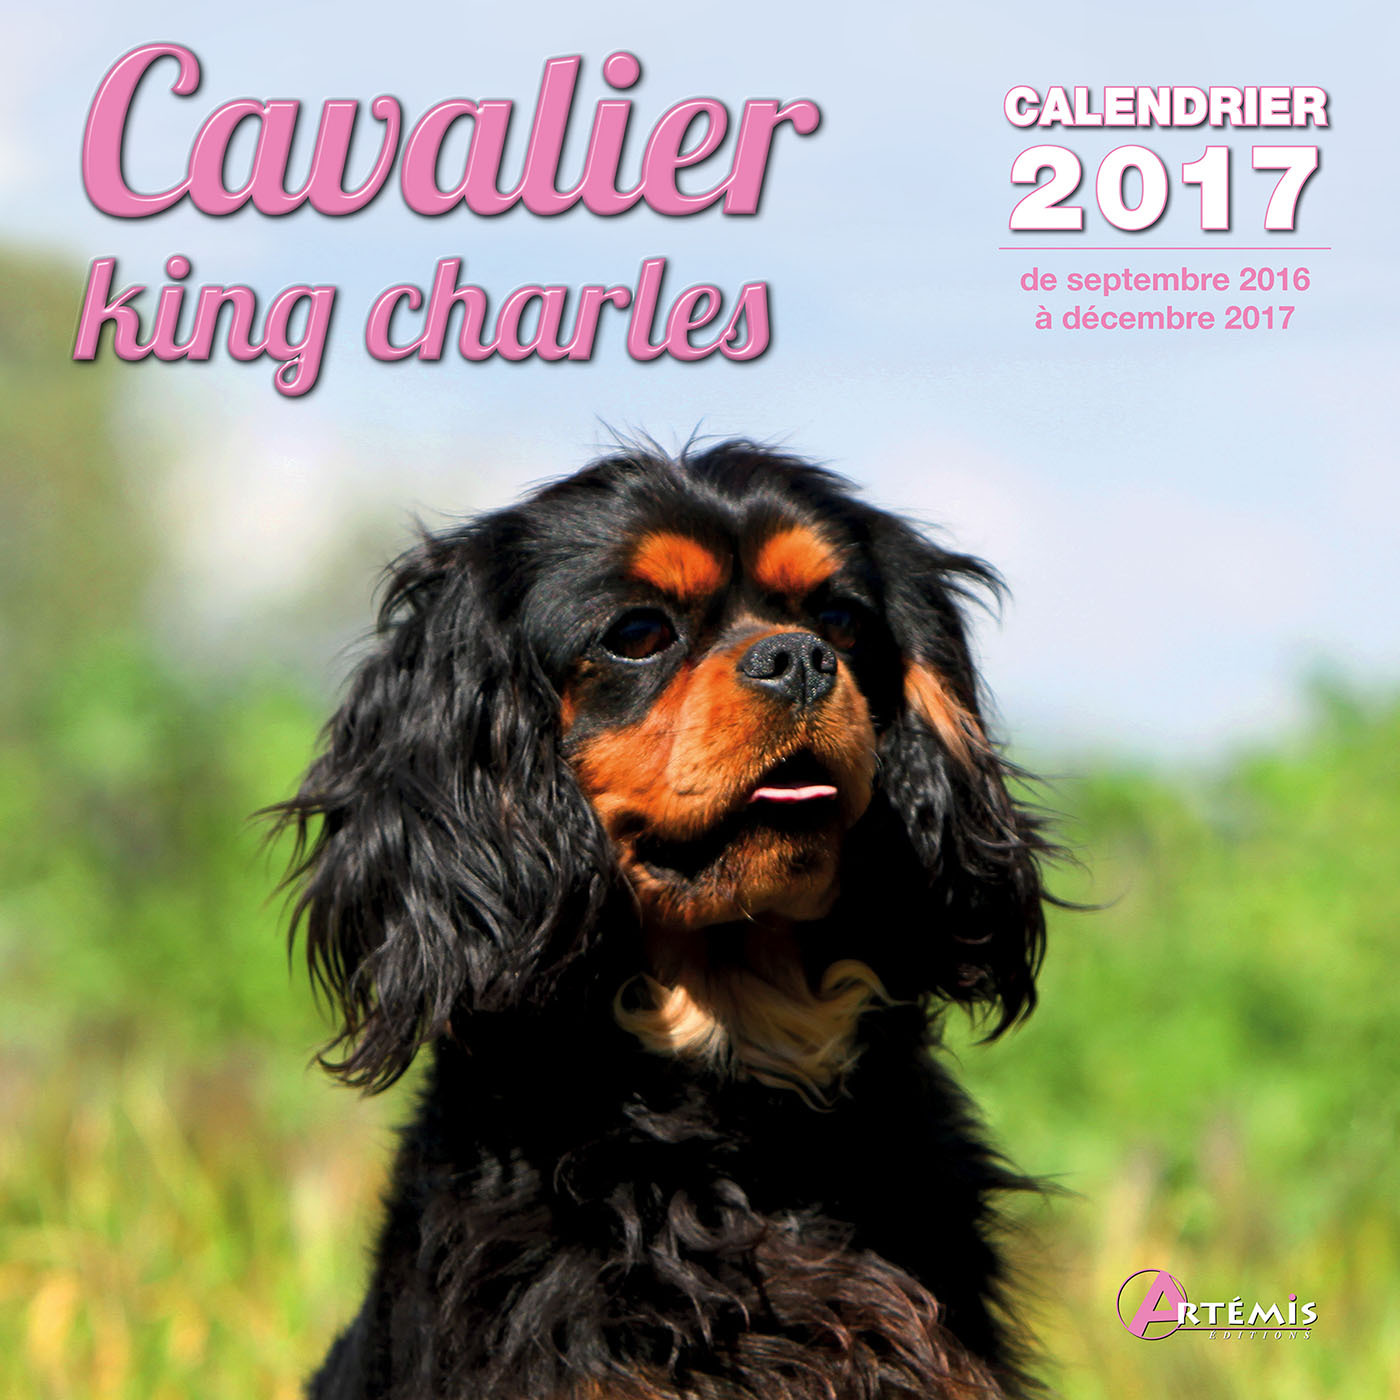 CALENDRIER CAVALIER KING CHARLES 2017